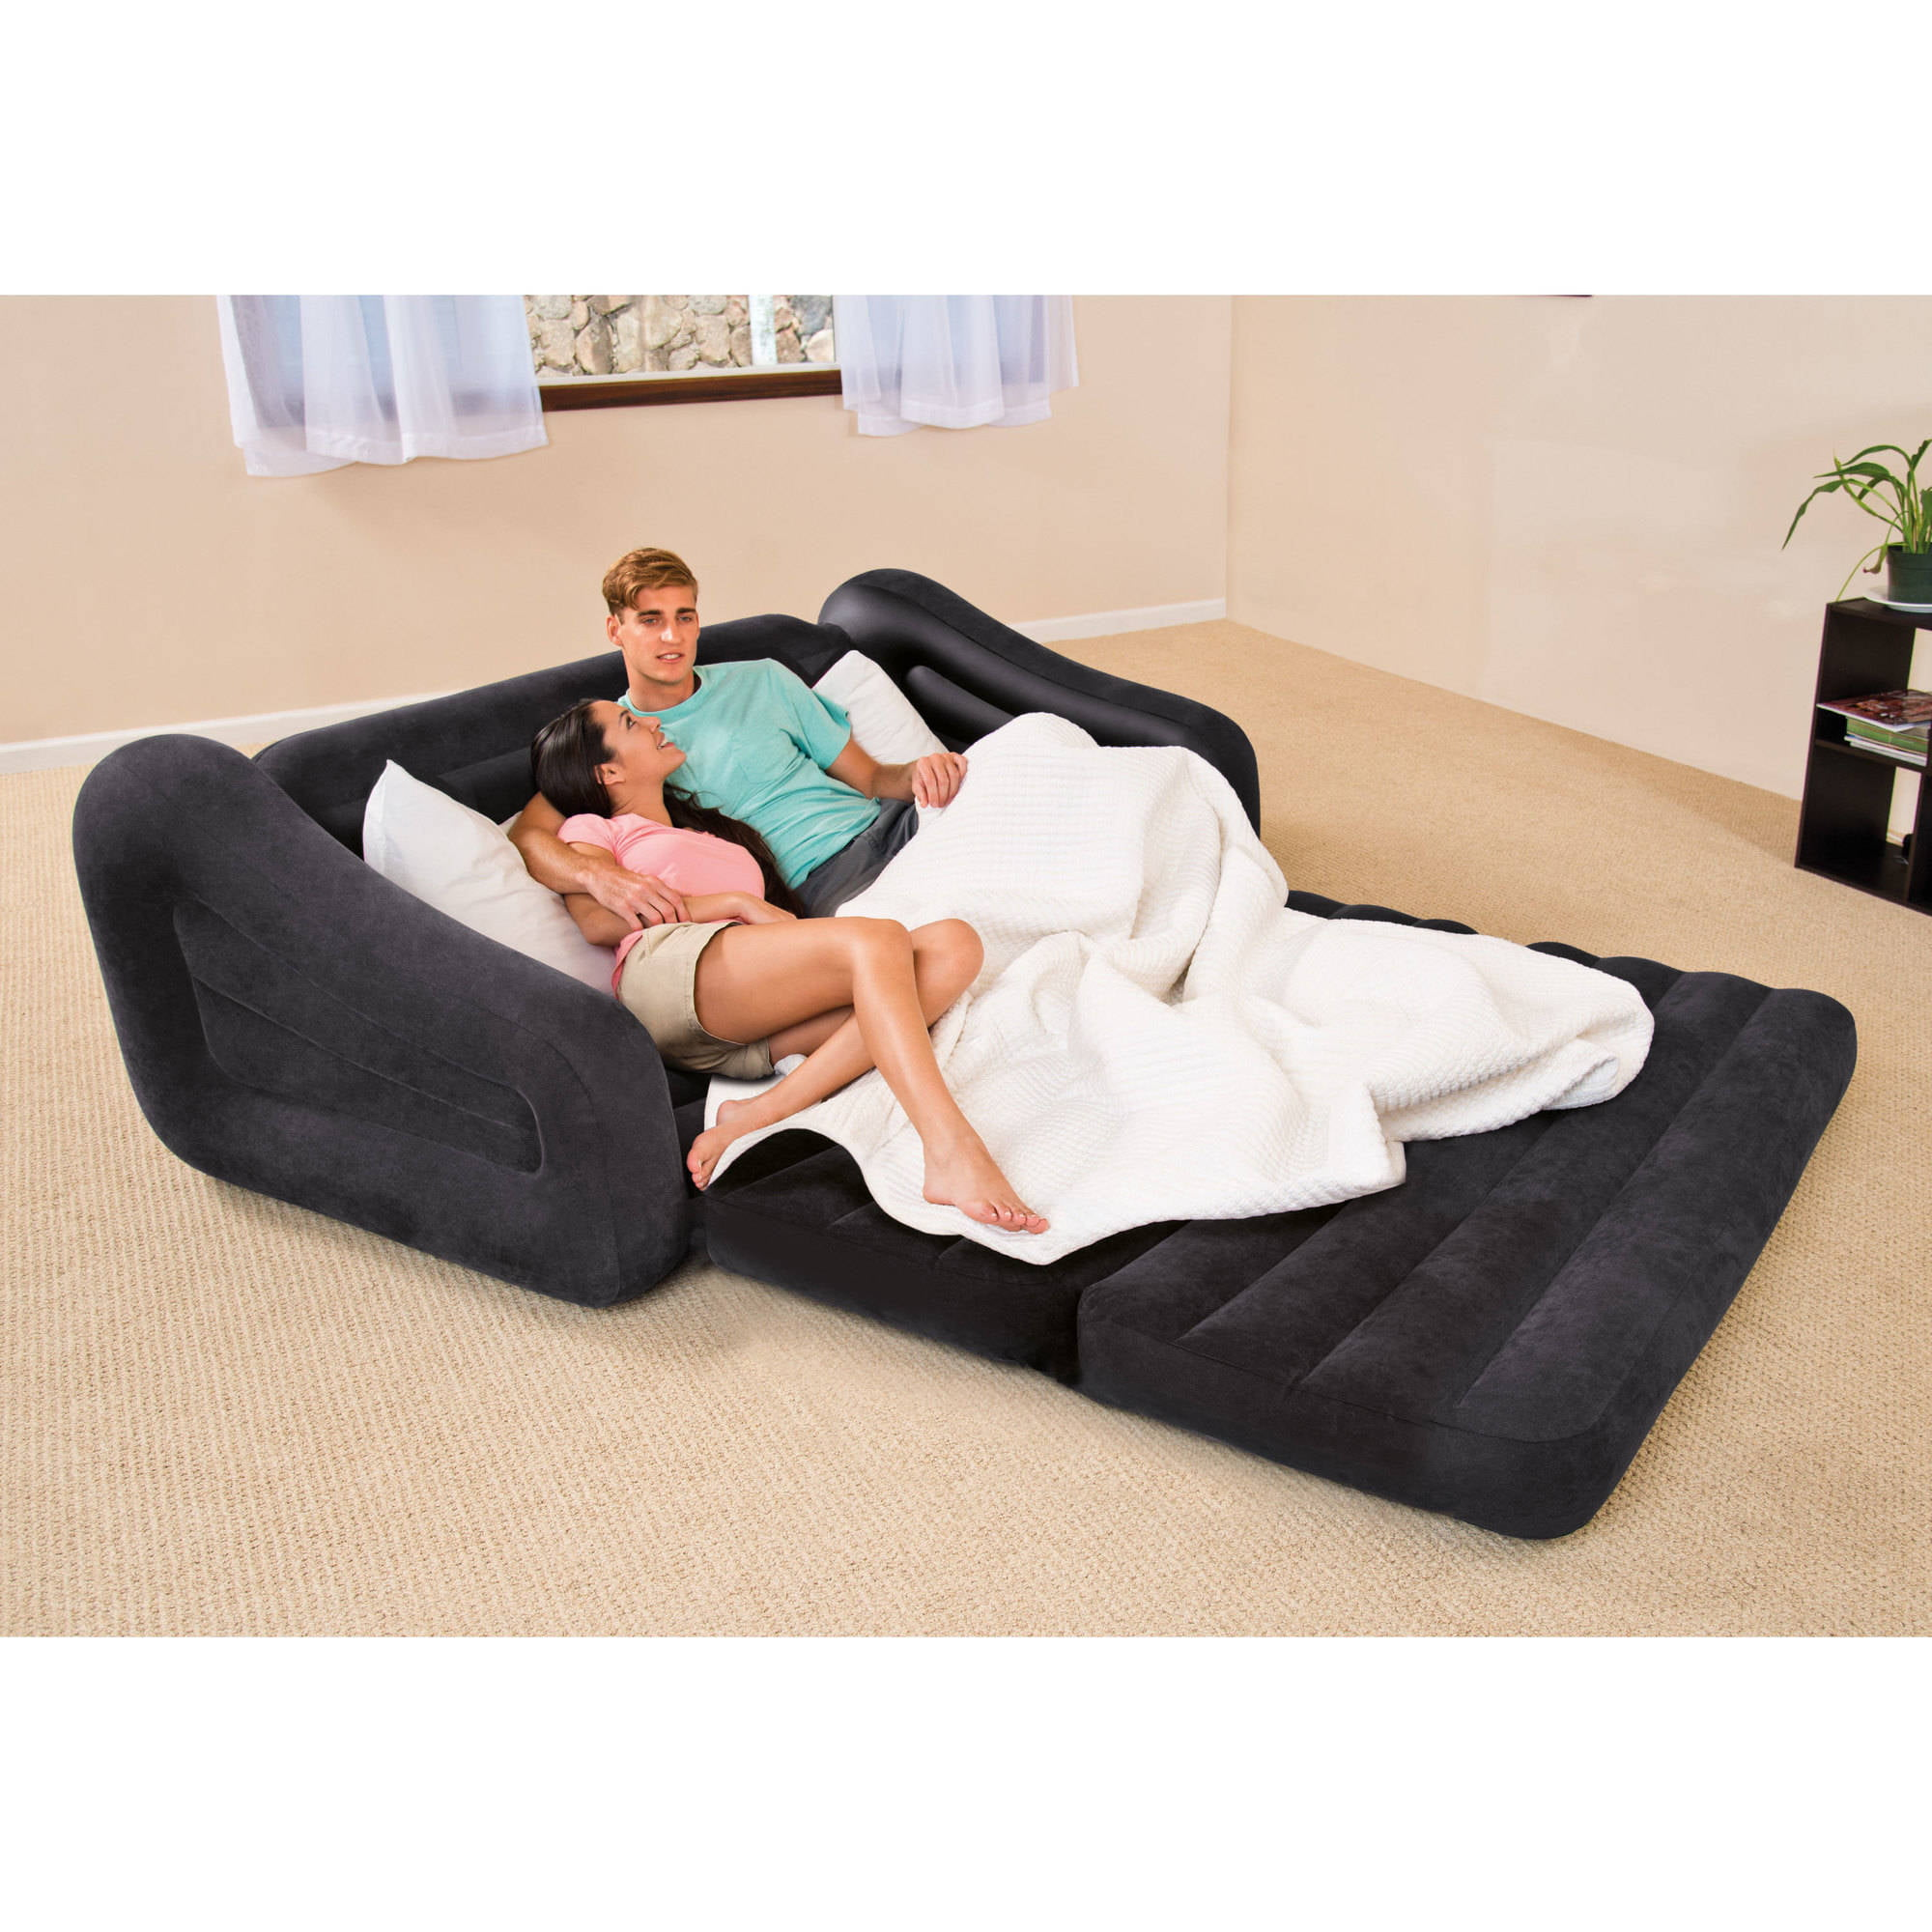 Inflatable Pull Out Air Sofa Bed Mattress Sleeper Blow Up